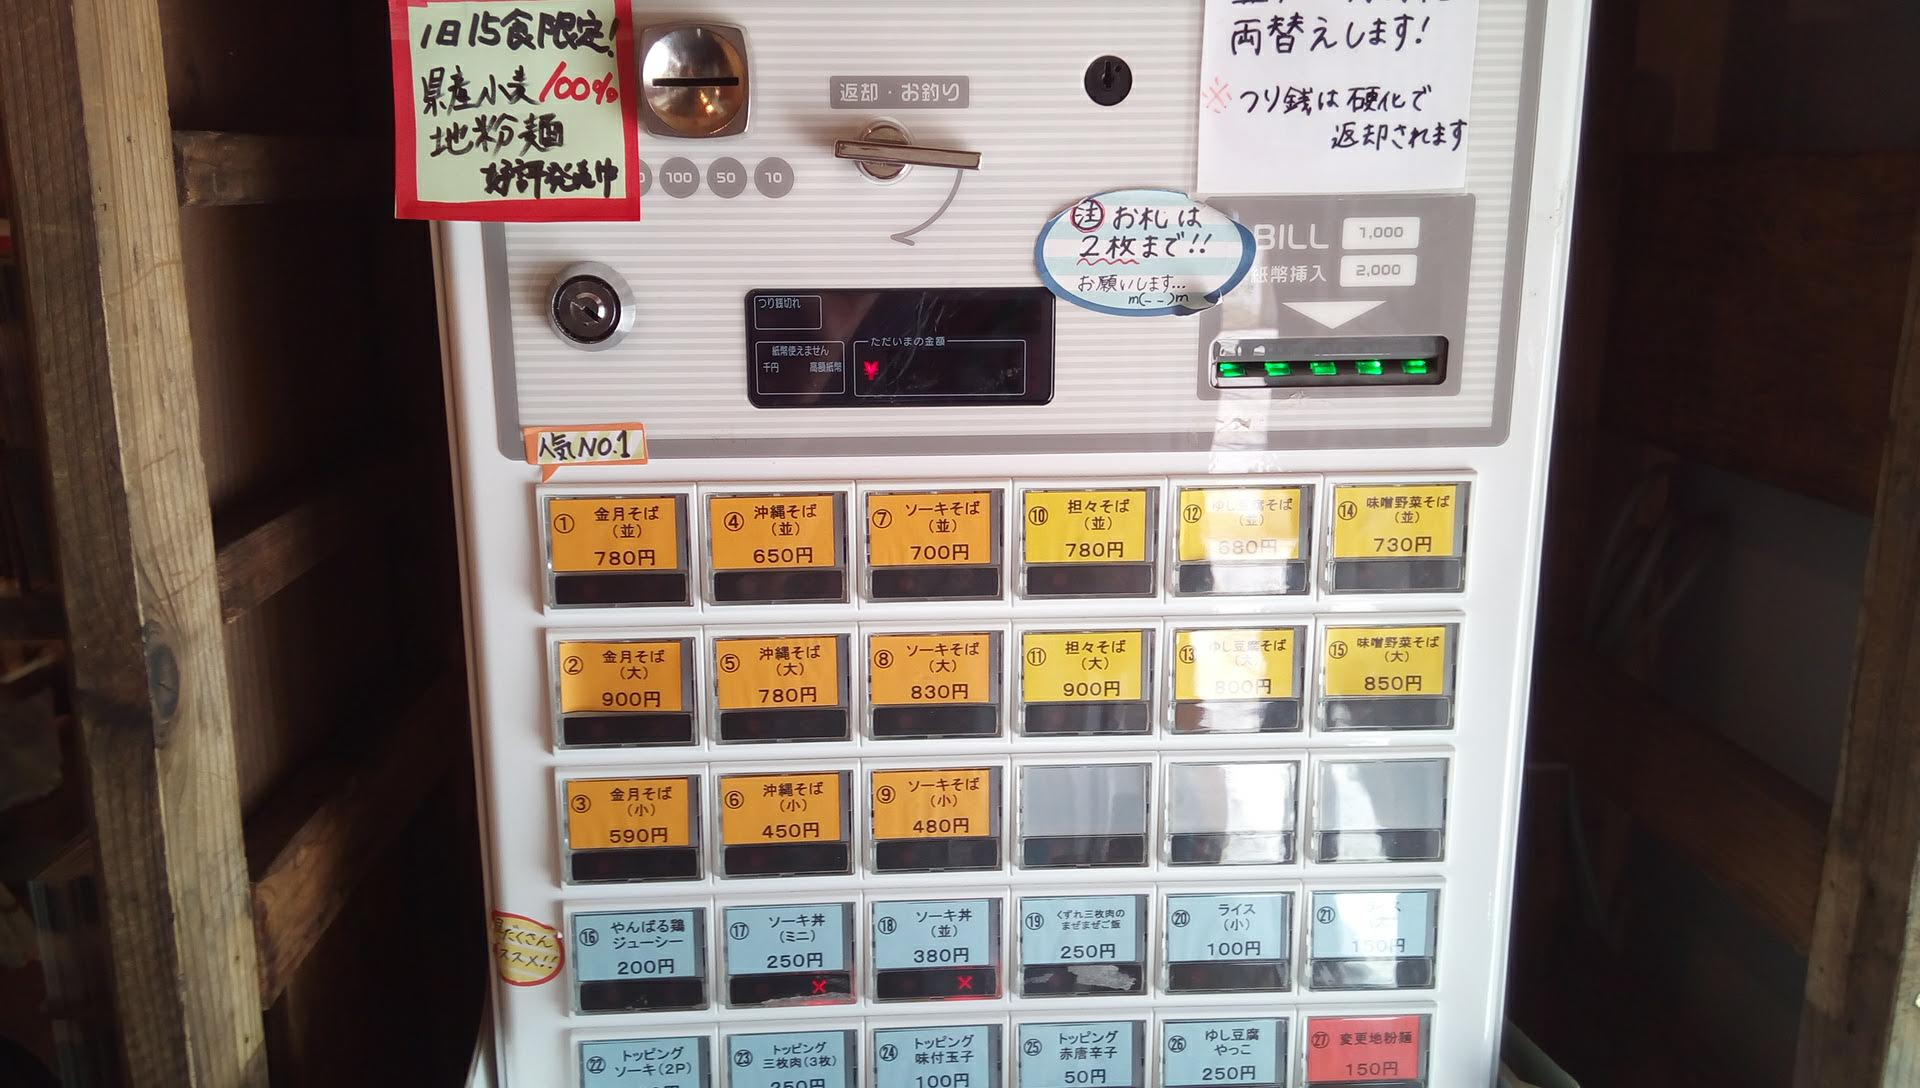 a ticket vending machine of Kinchichi soba